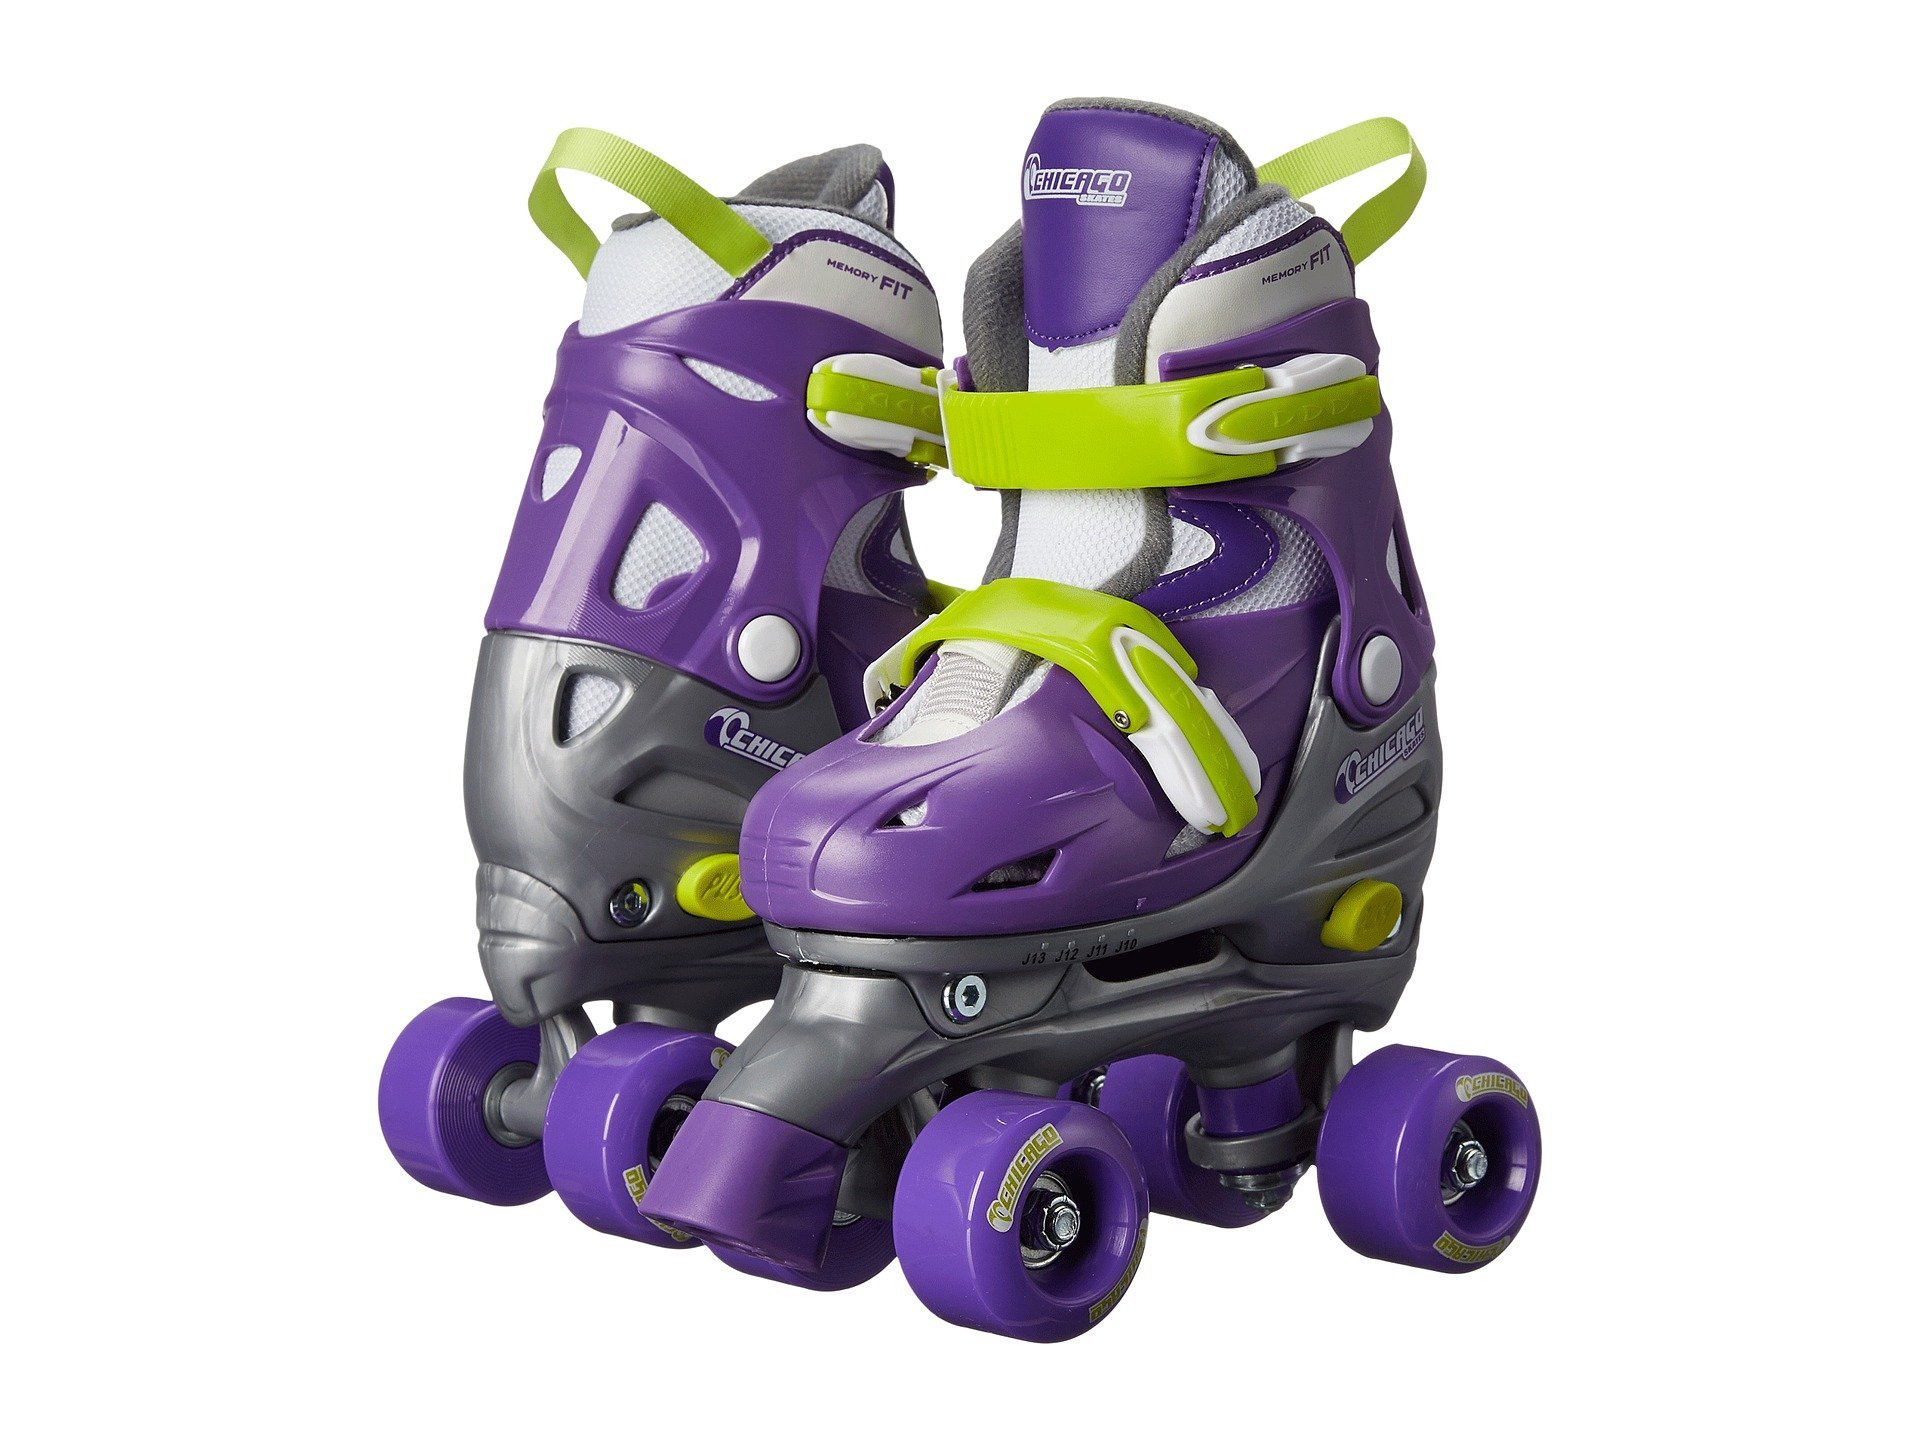 Chicago Kids Adjustable Quad Roller Skates - Purple - Small